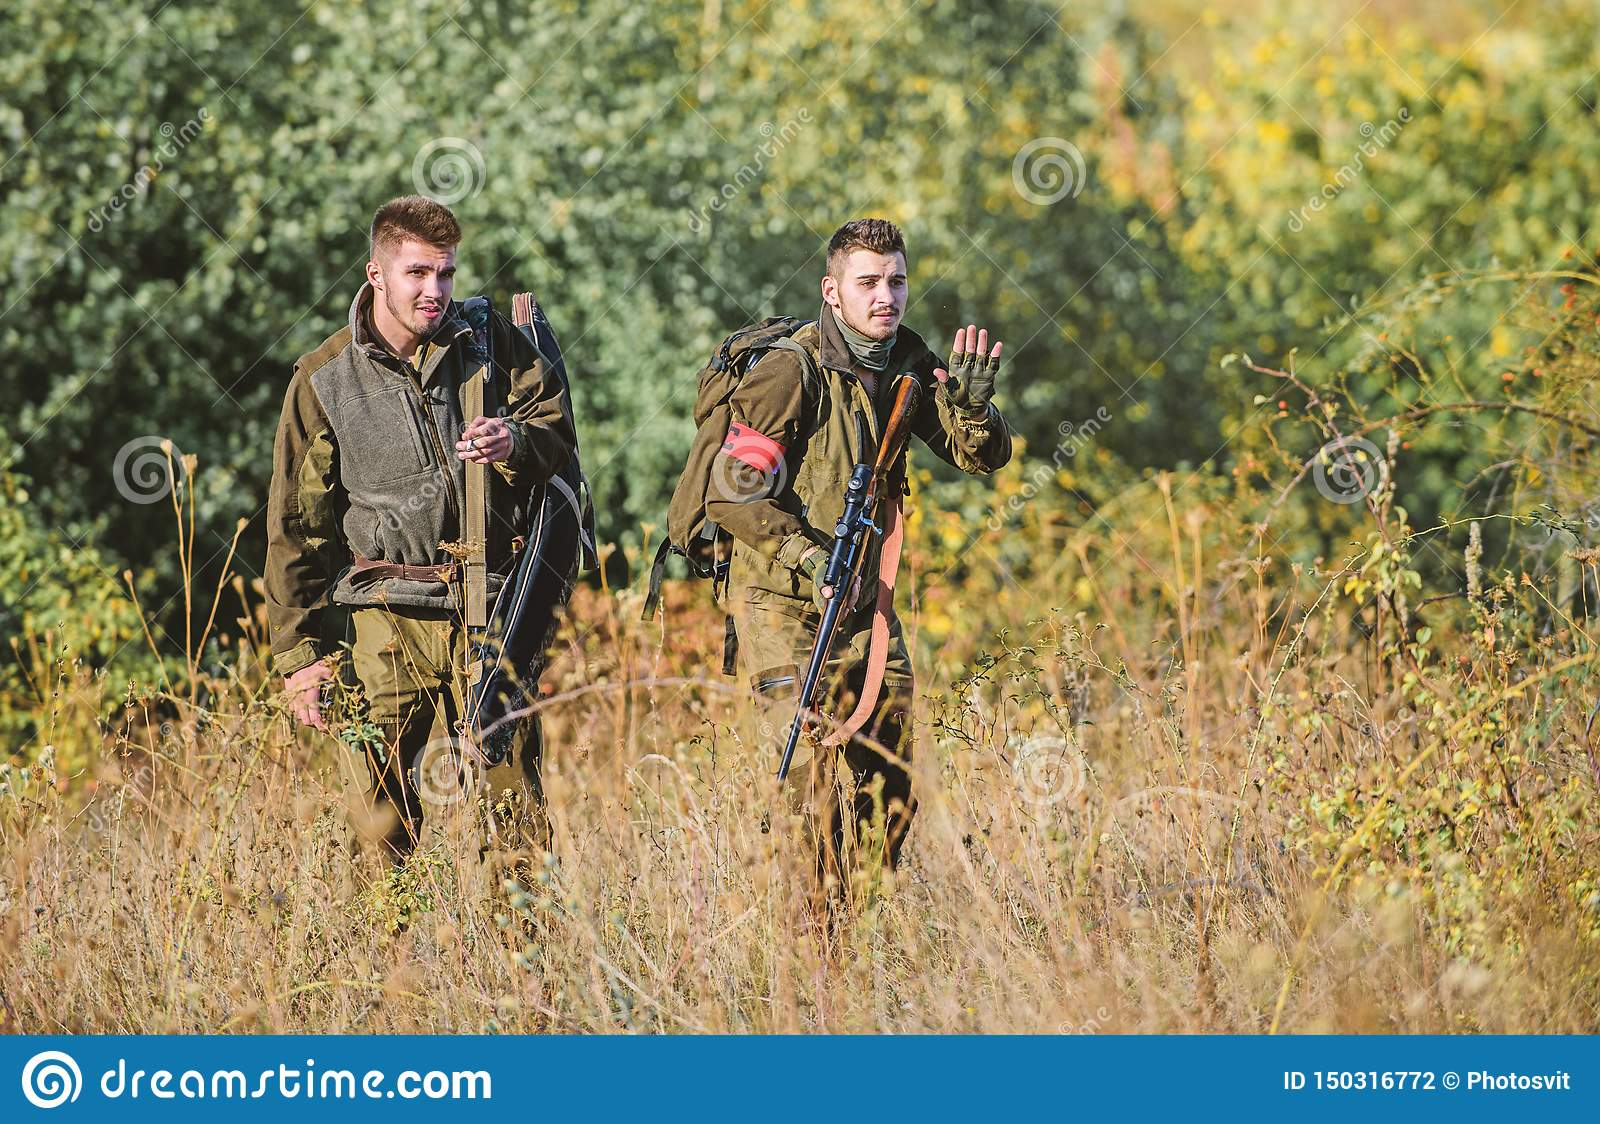 Hunting with friends. Hunters friends enjoy leisure. Hunters with rifles in nature environment. Teamwork and support